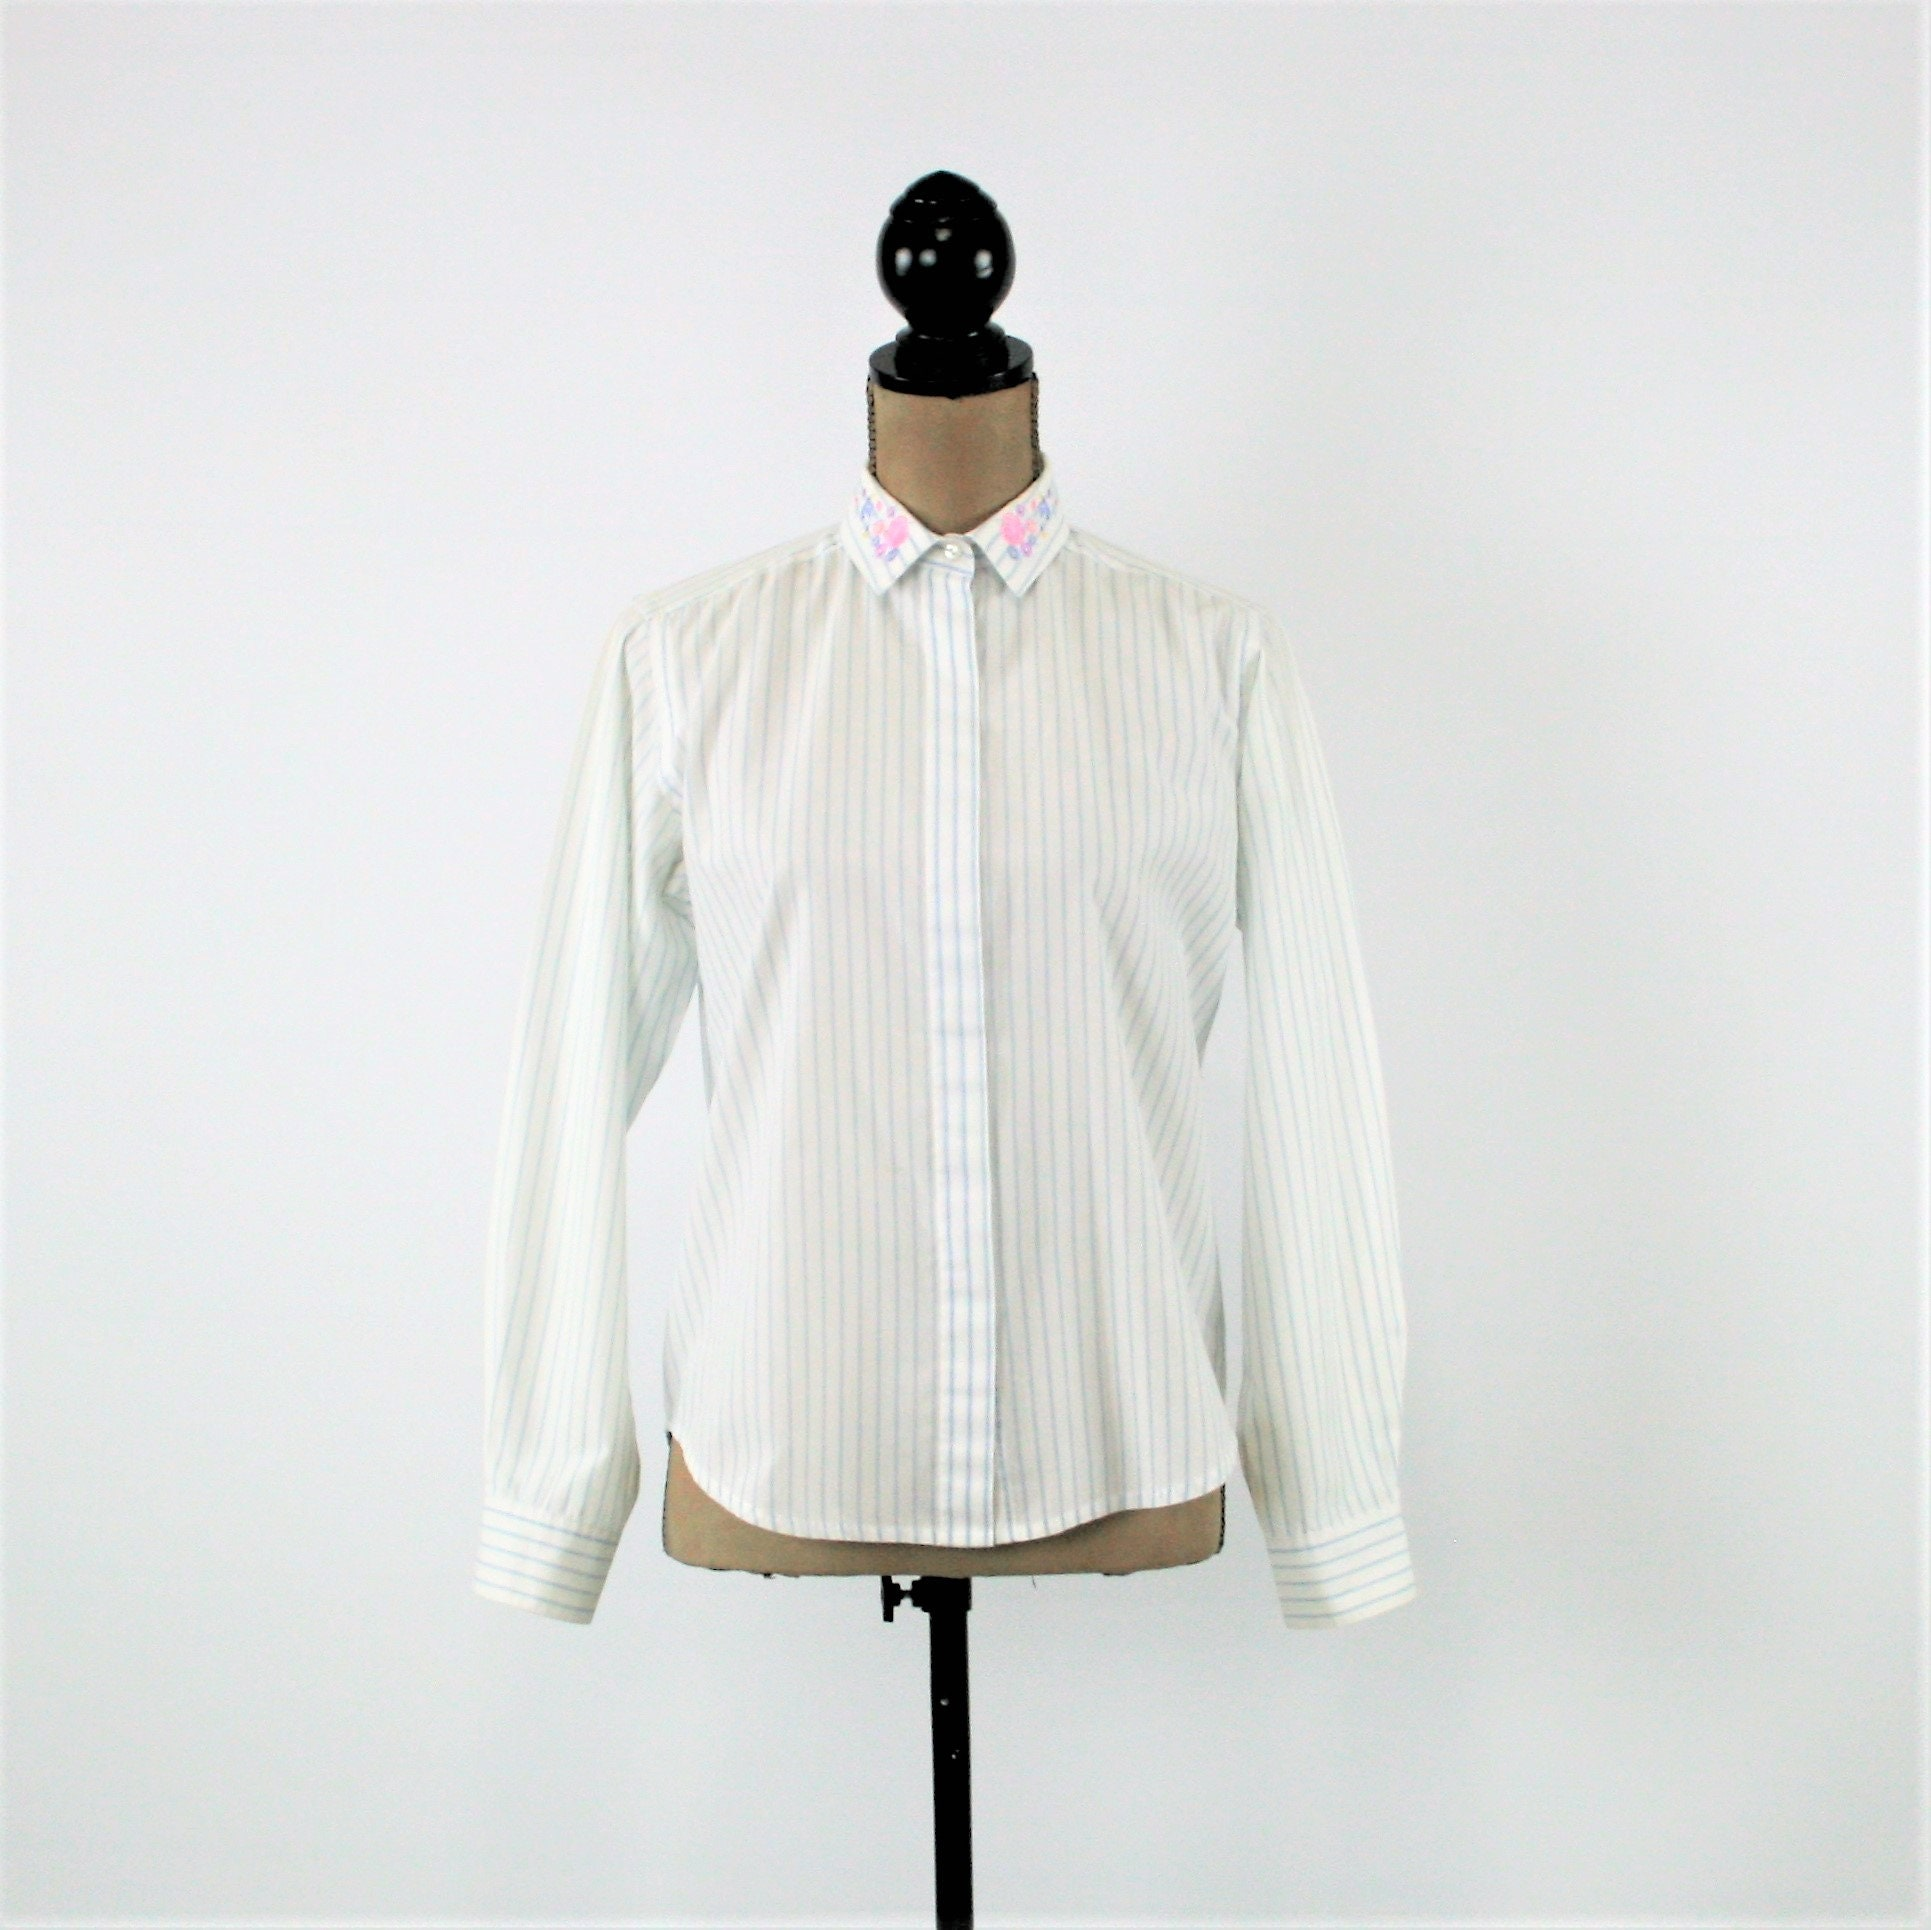 70s Long Sleeve Shirt Women Button Up Blouse White With Light Etsy